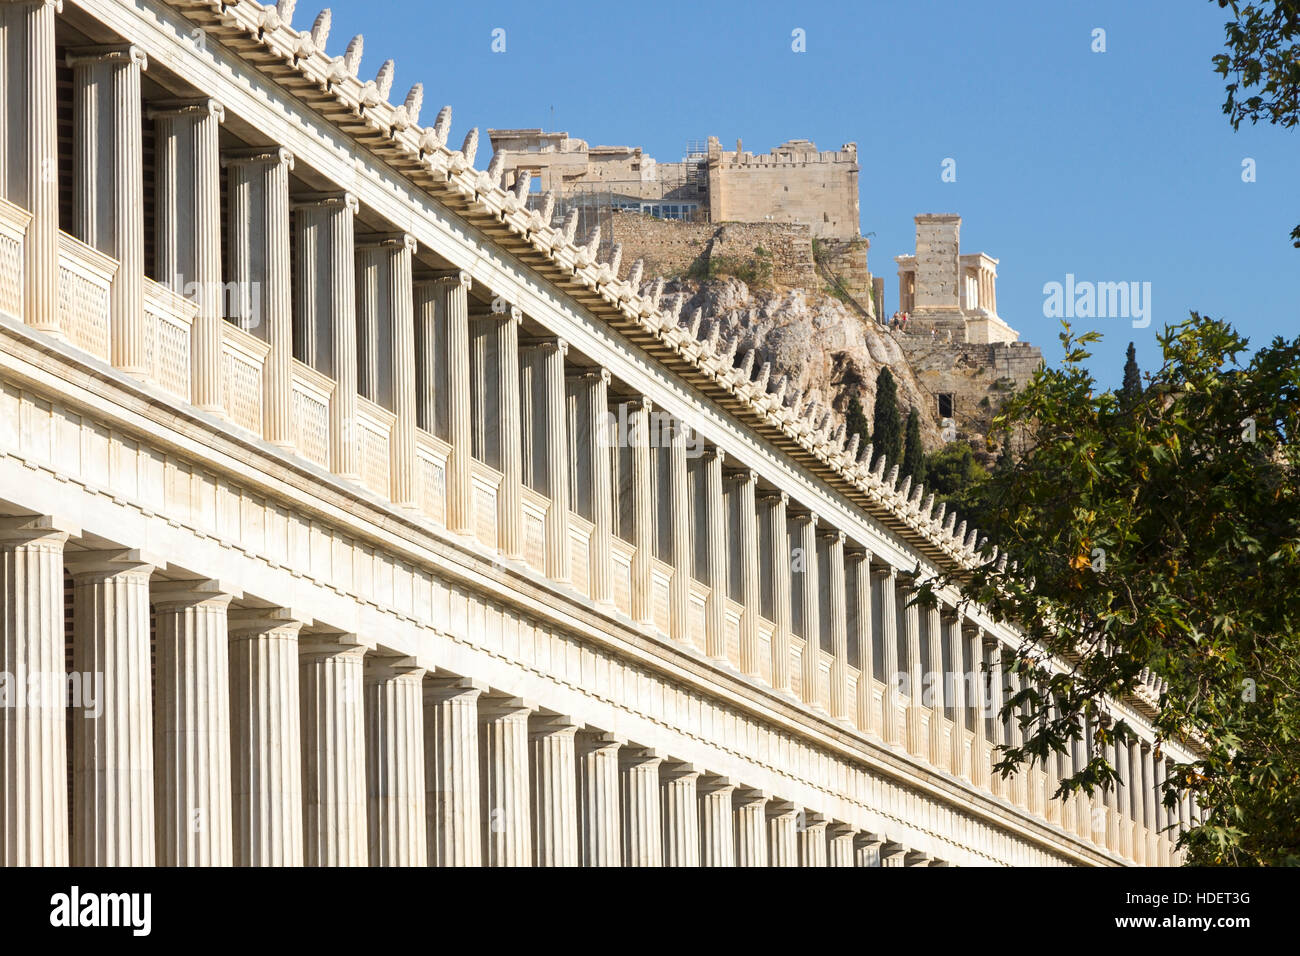 Partial view of the Stoa of Attalos, in the Agora of Athens. It was originally built by King Attalos, in 2nd c. - Stock Image